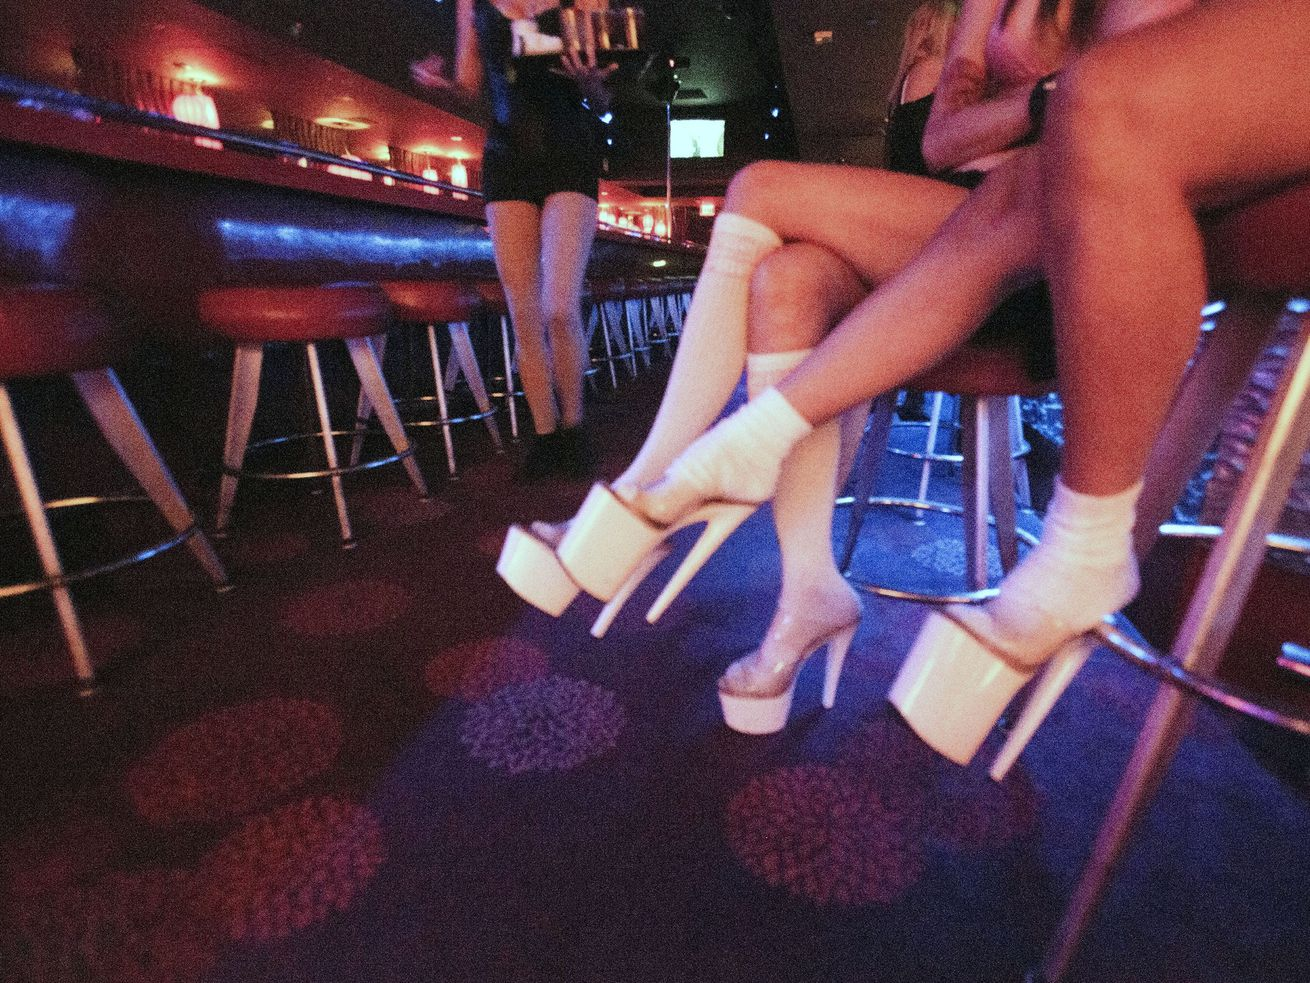 Dancers at Las Vegas clubs like this one, Girls of Glitter Gulch, can soon shed their tops along with some coronavirus restrictions under rules a Nevada COVID-19 task force has approved.